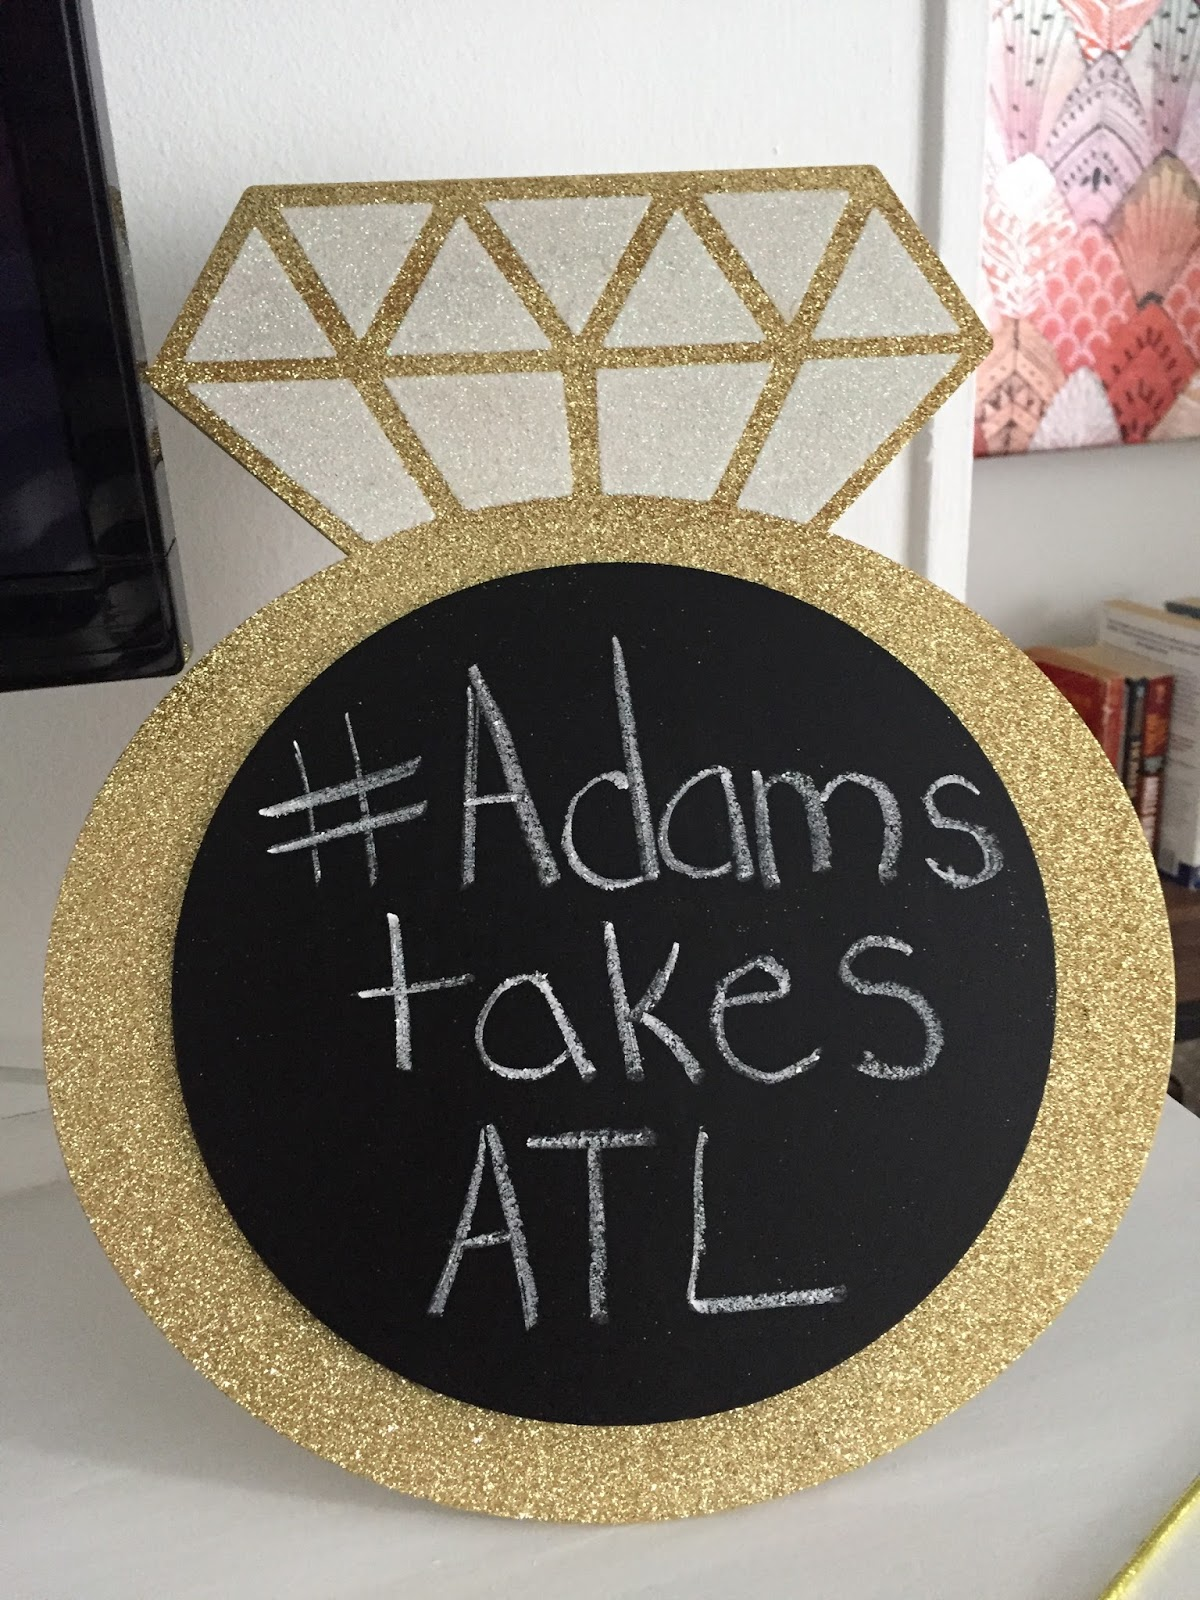 Weekend Recap: #AdamsTakesATL